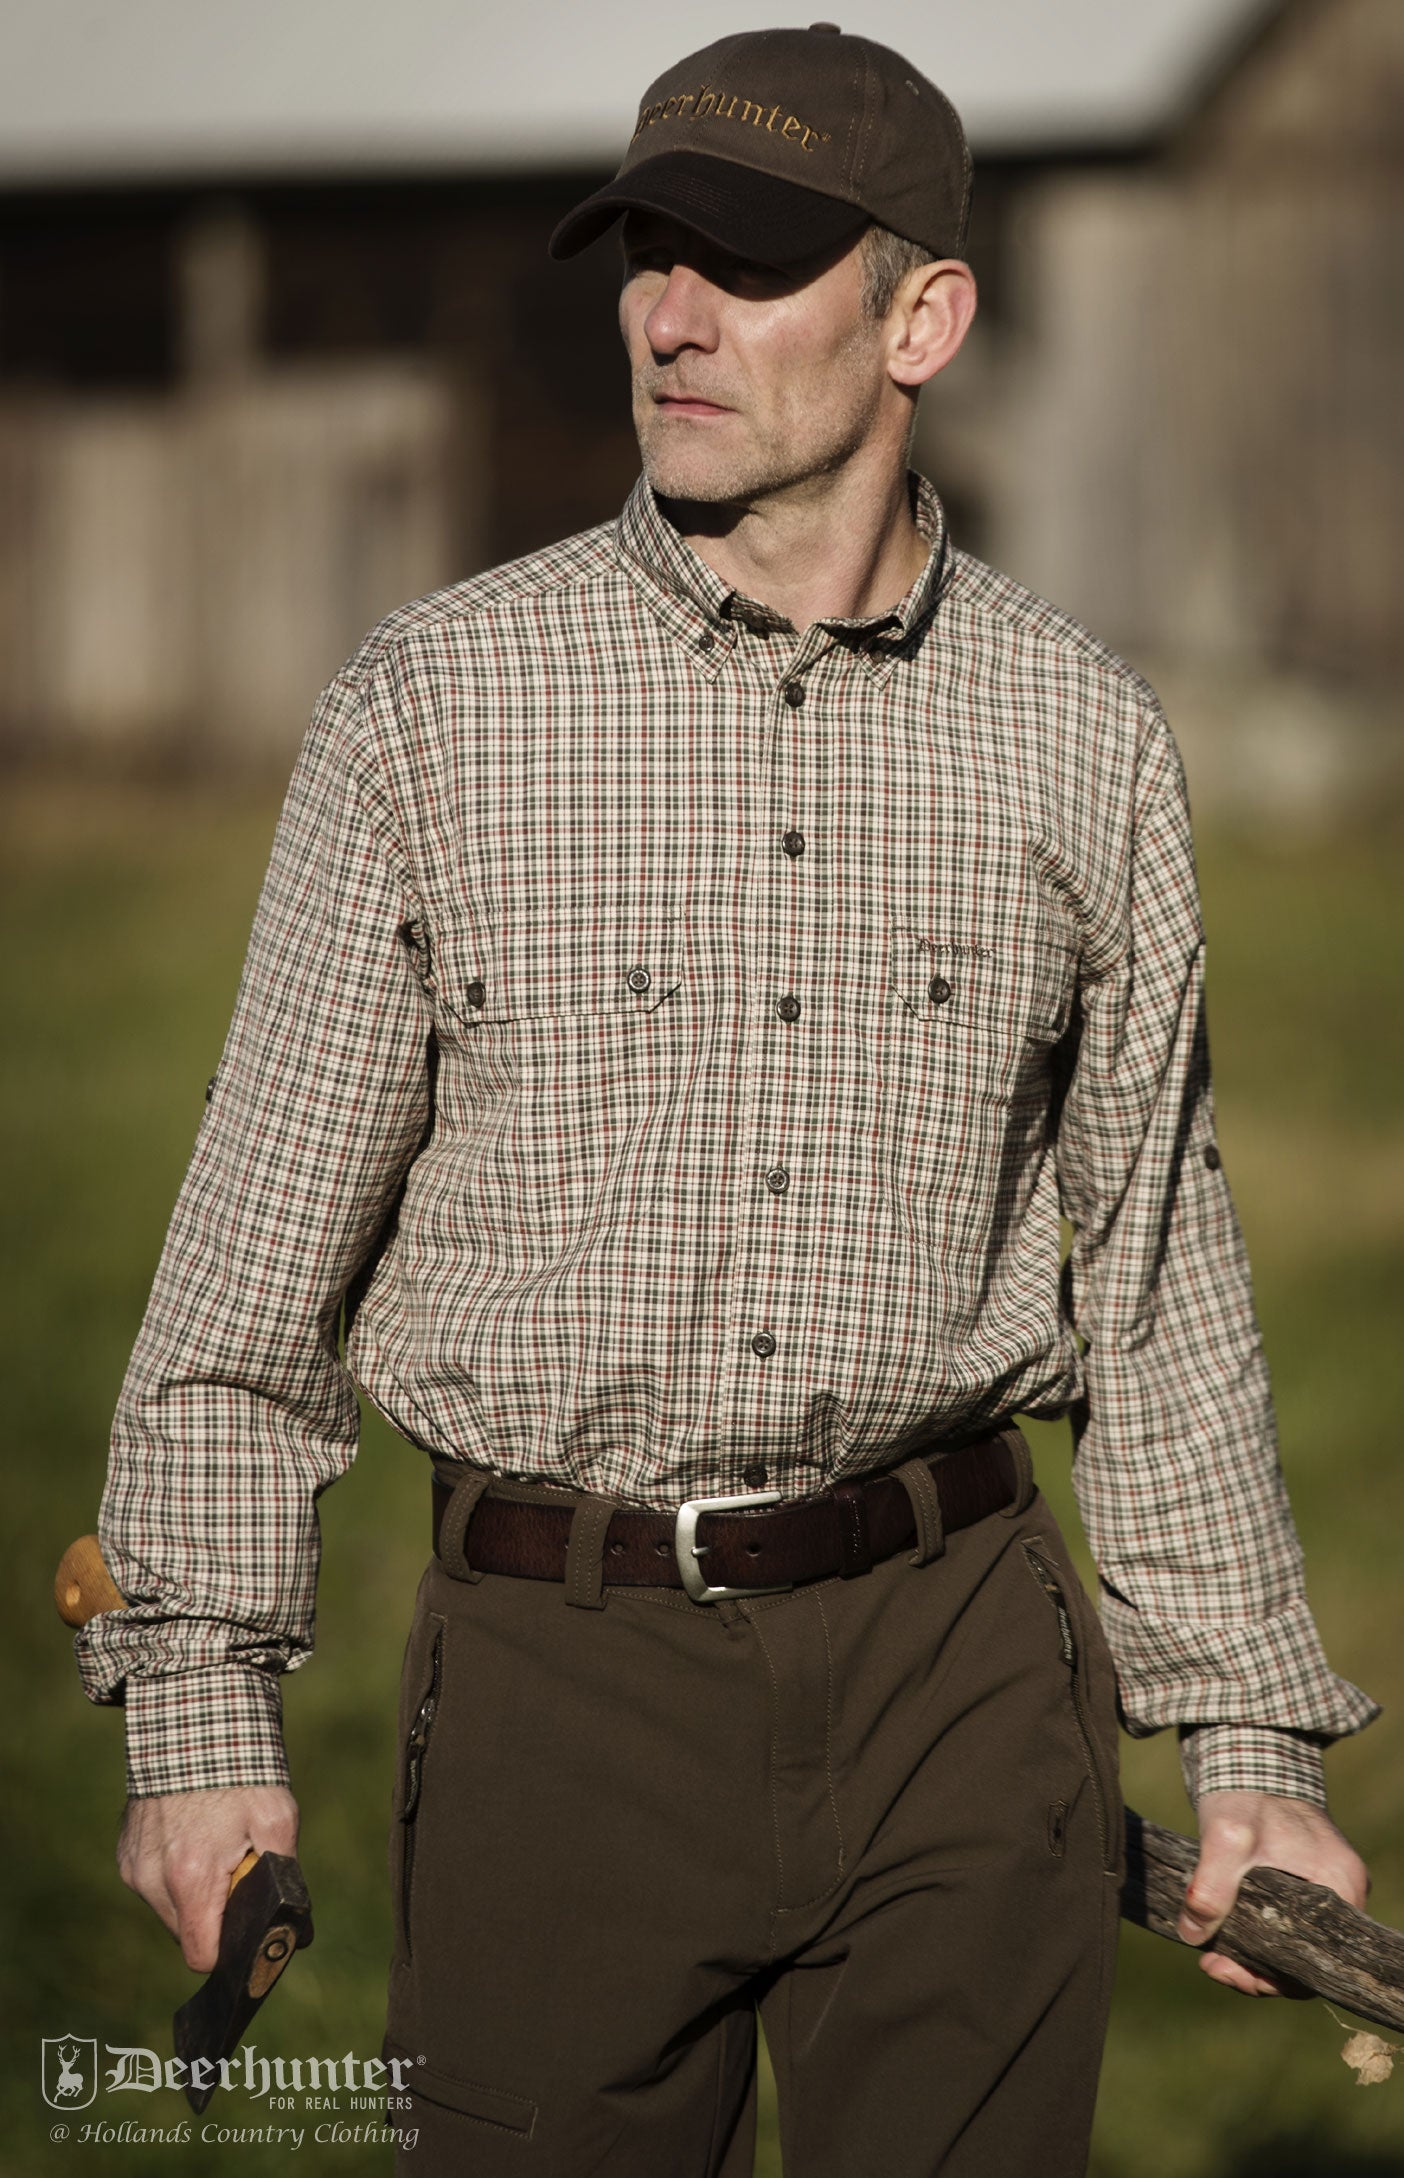 deerhunter check shirt in green small tartan